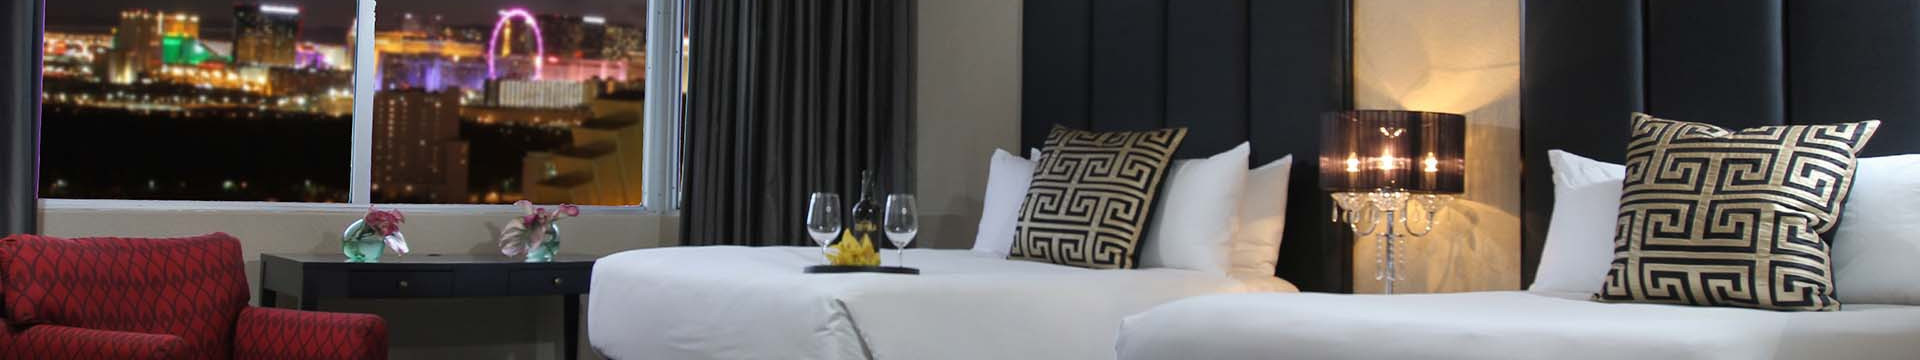 Las Vegas Hotel and Casino Overview | Luxurious Suites with Spectacular Views